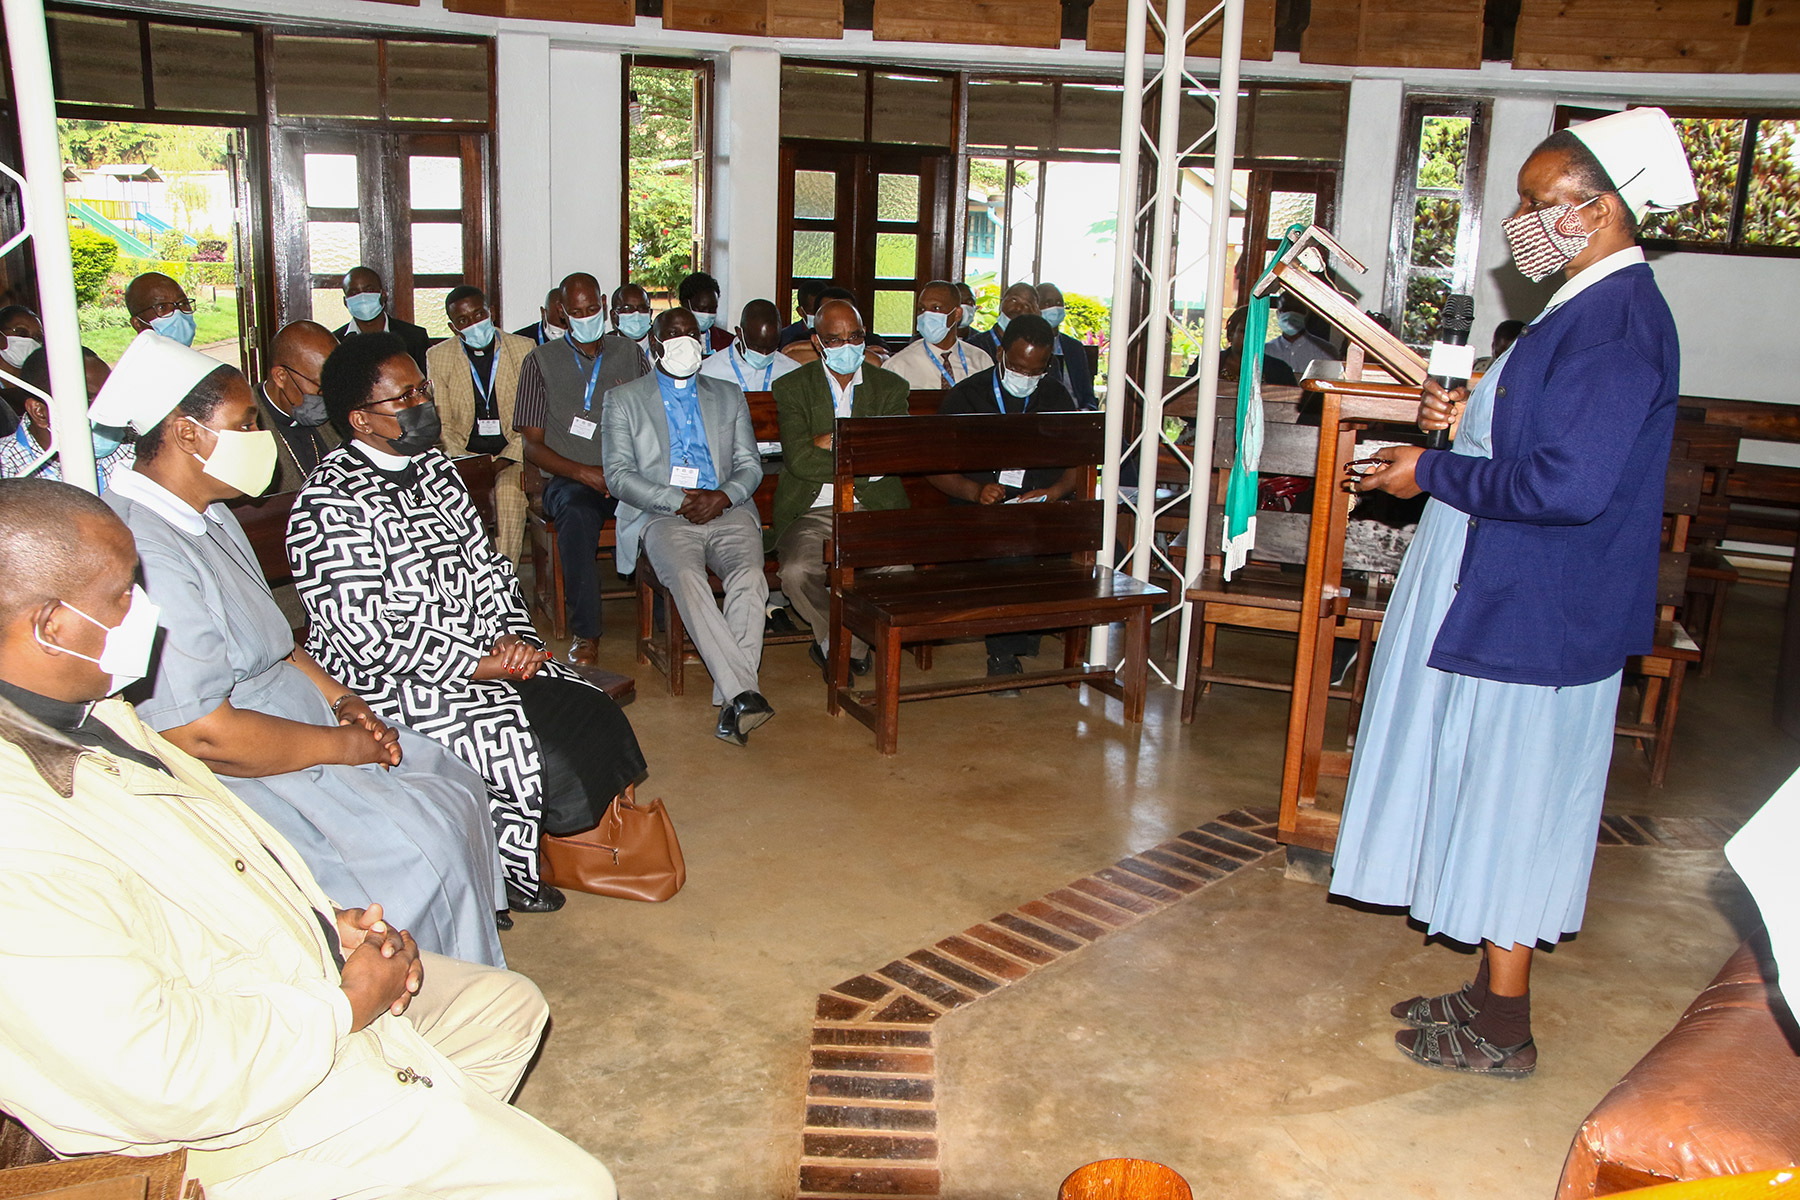 Director of the Lutheran Sisters' Convent Ushirika wa Neema Sister Elistaha Mlay briefs EECMY and LWF delegates on the work of their community. E.Adolph/ELCT